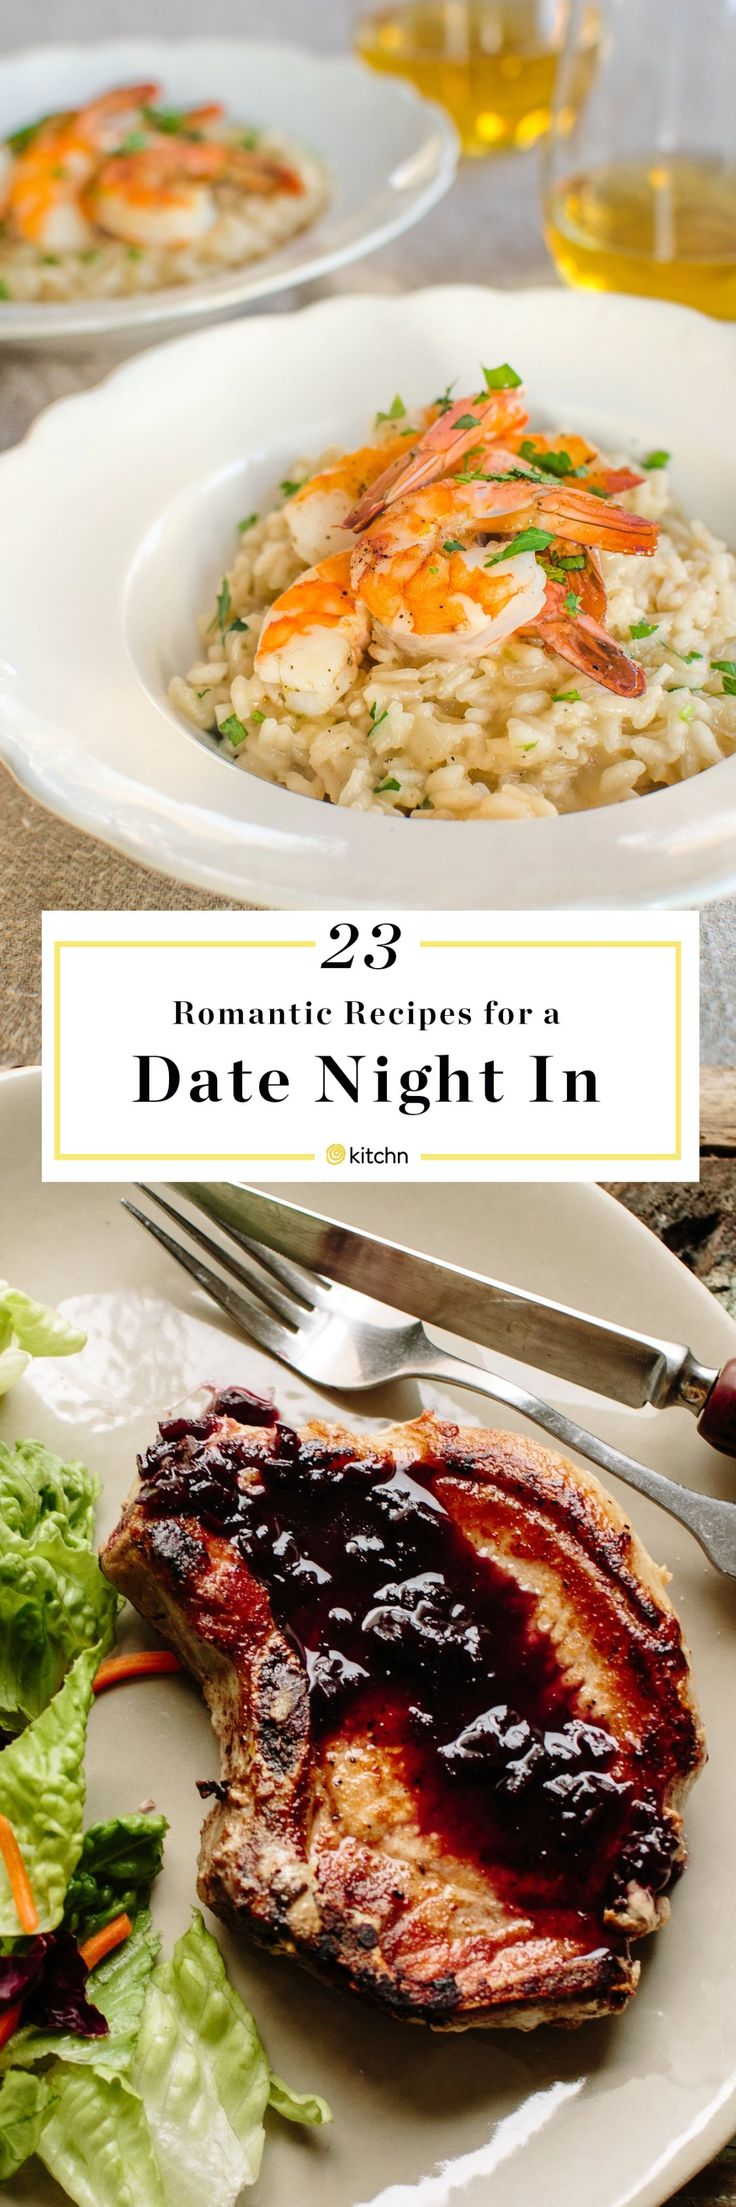 25+ unique Romantic night ideas on Pinterest | Romantic ...